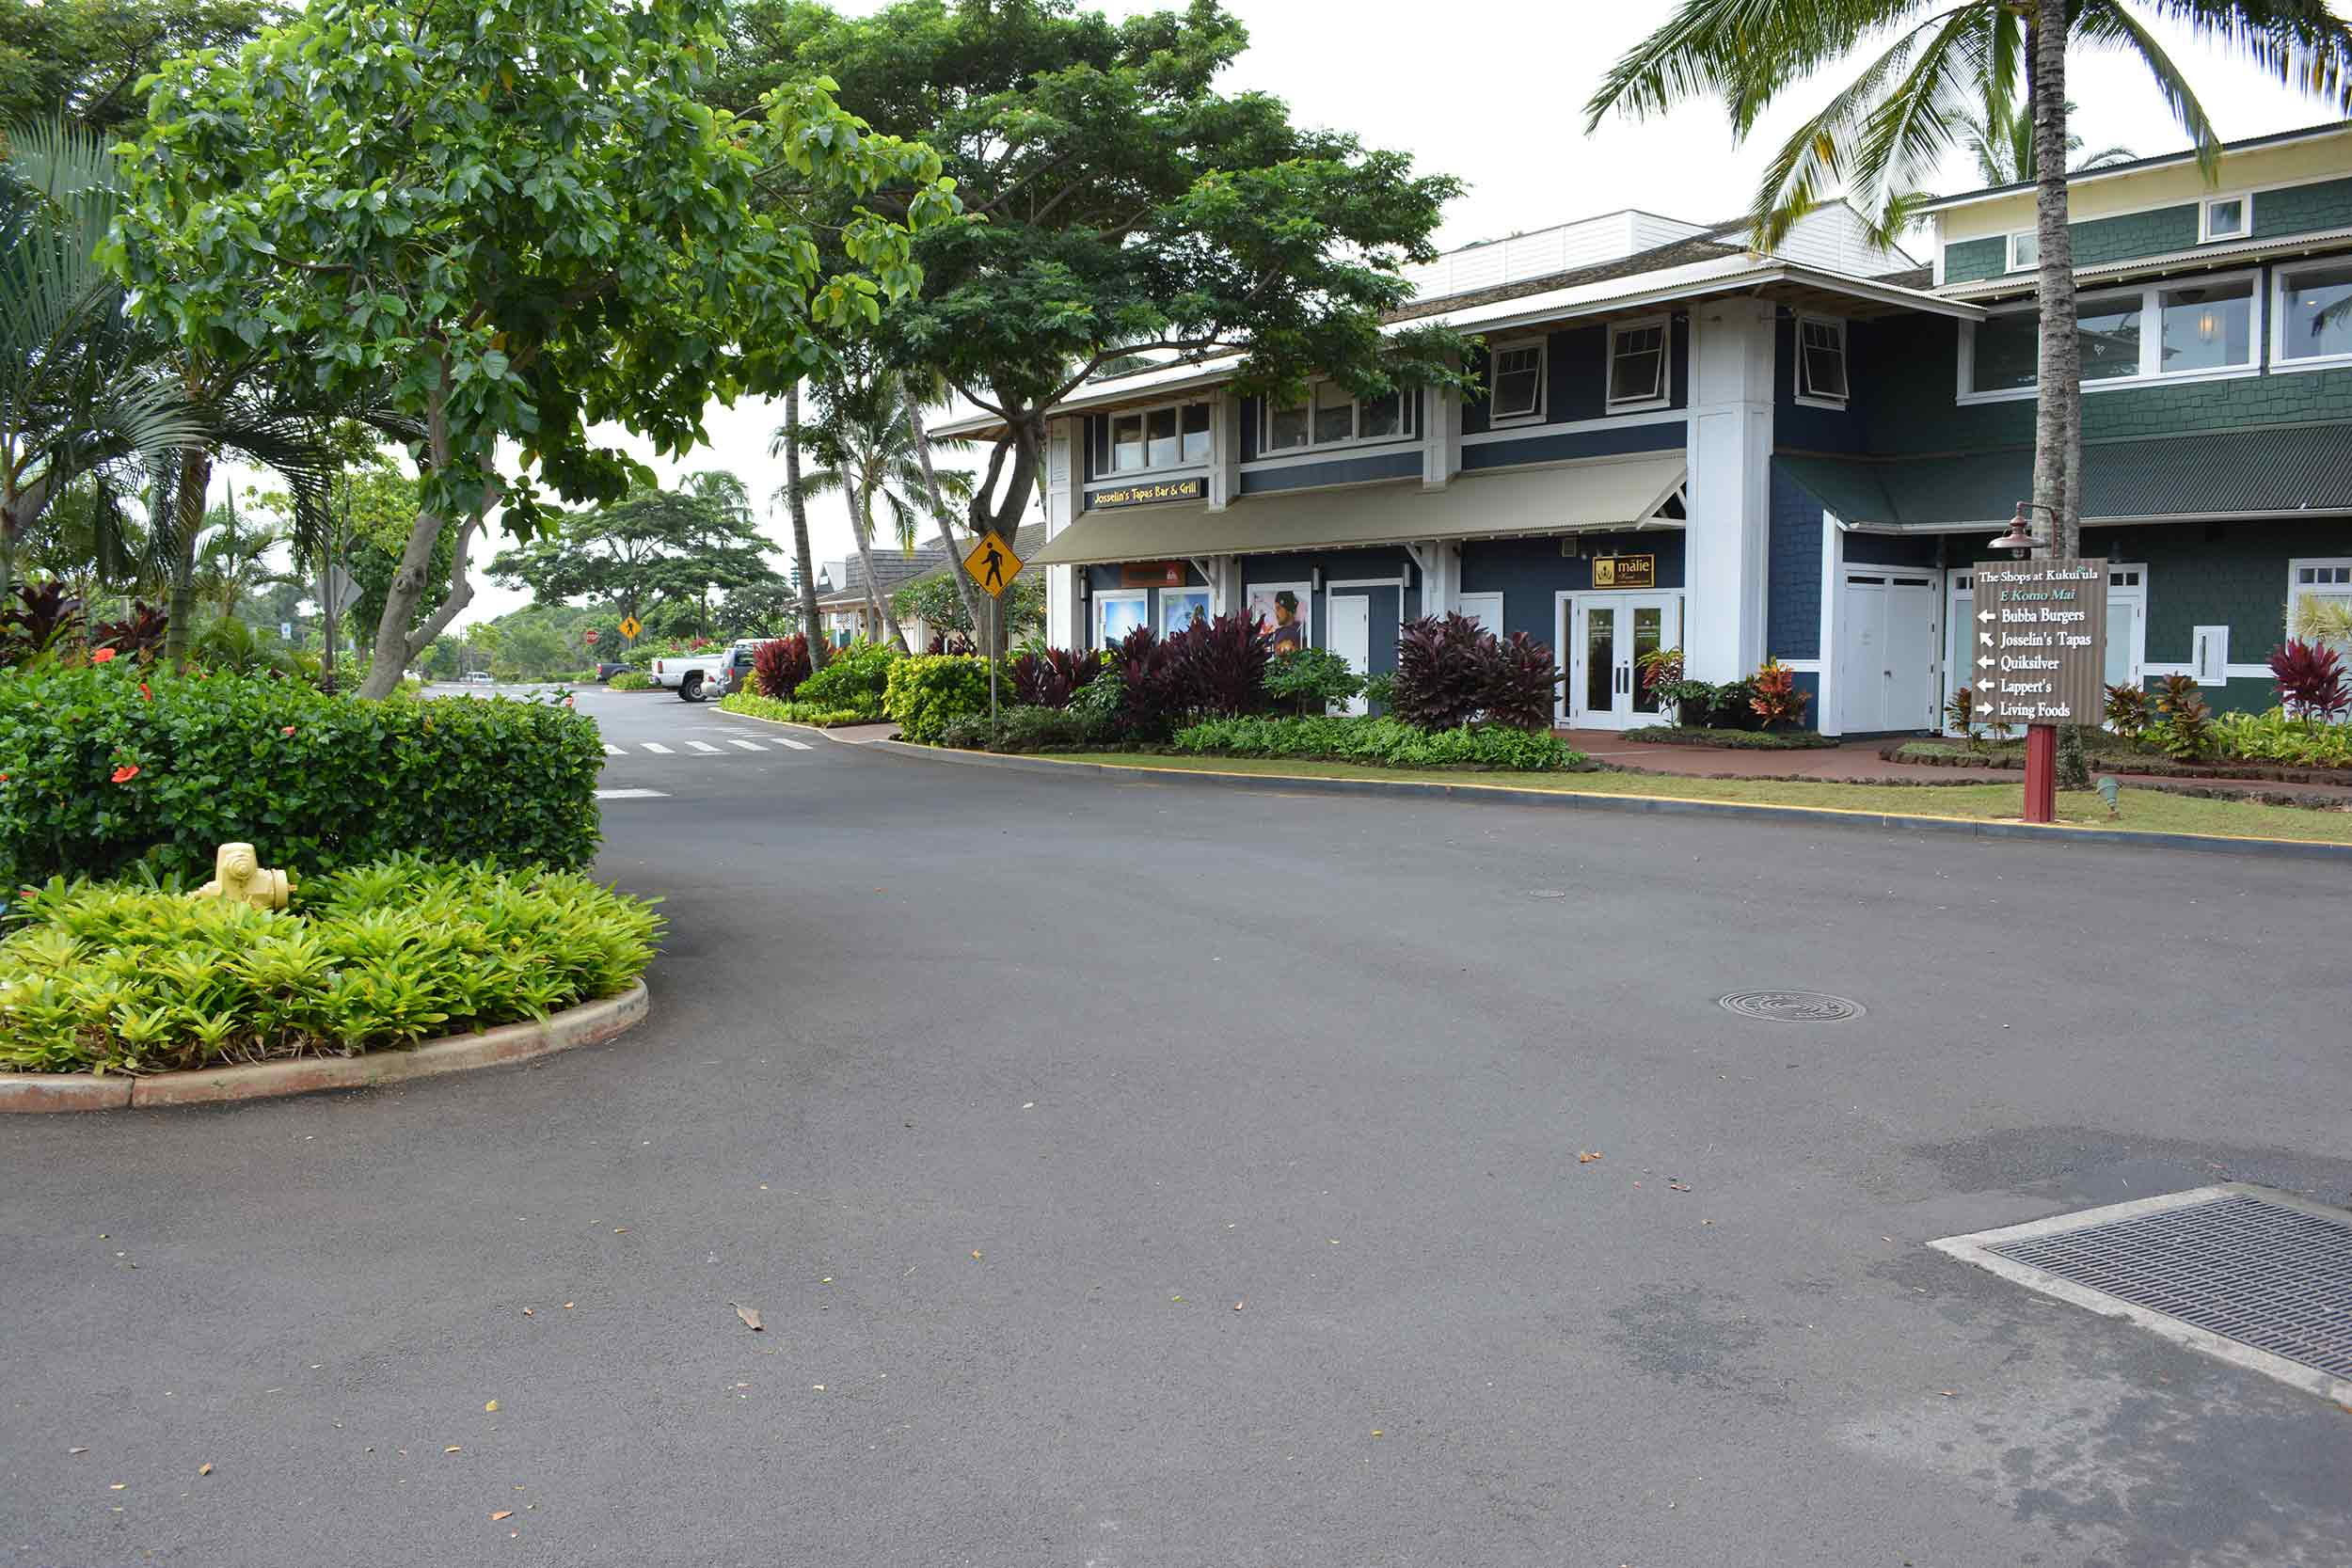 landscaping for shops at Kukuiula Kauai Hi